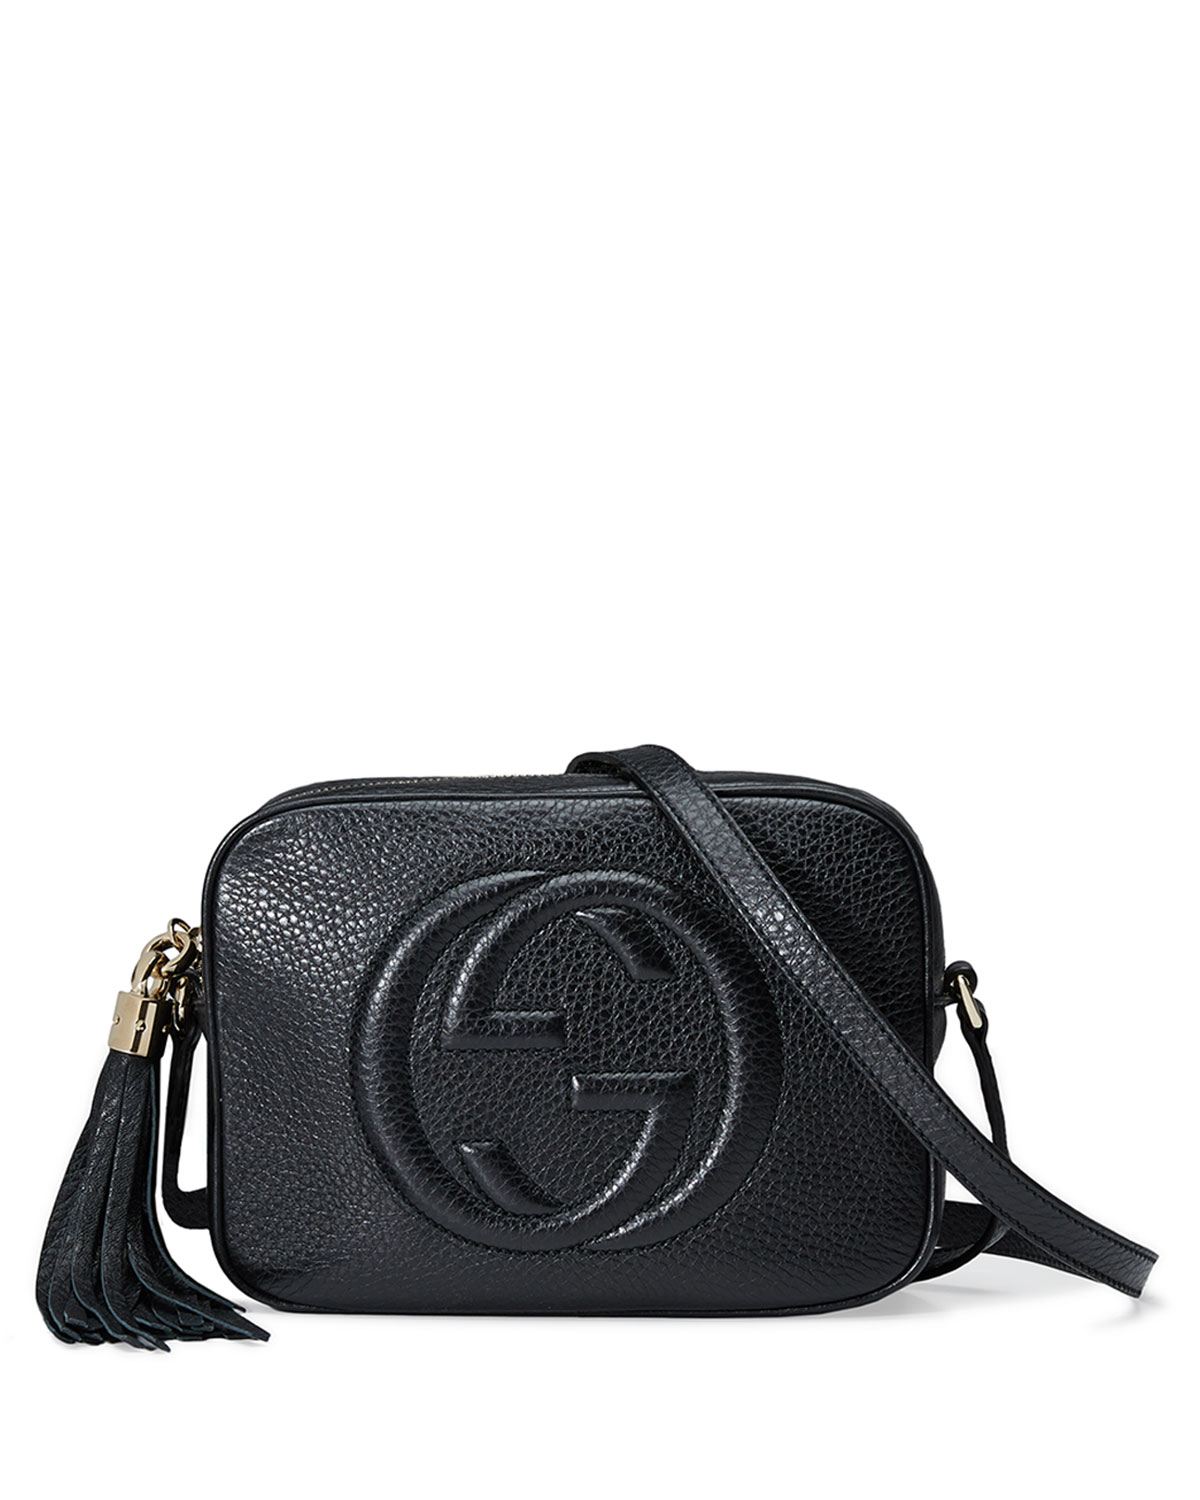 aa939ebec2b Gucci Soho Leather Disco Bag